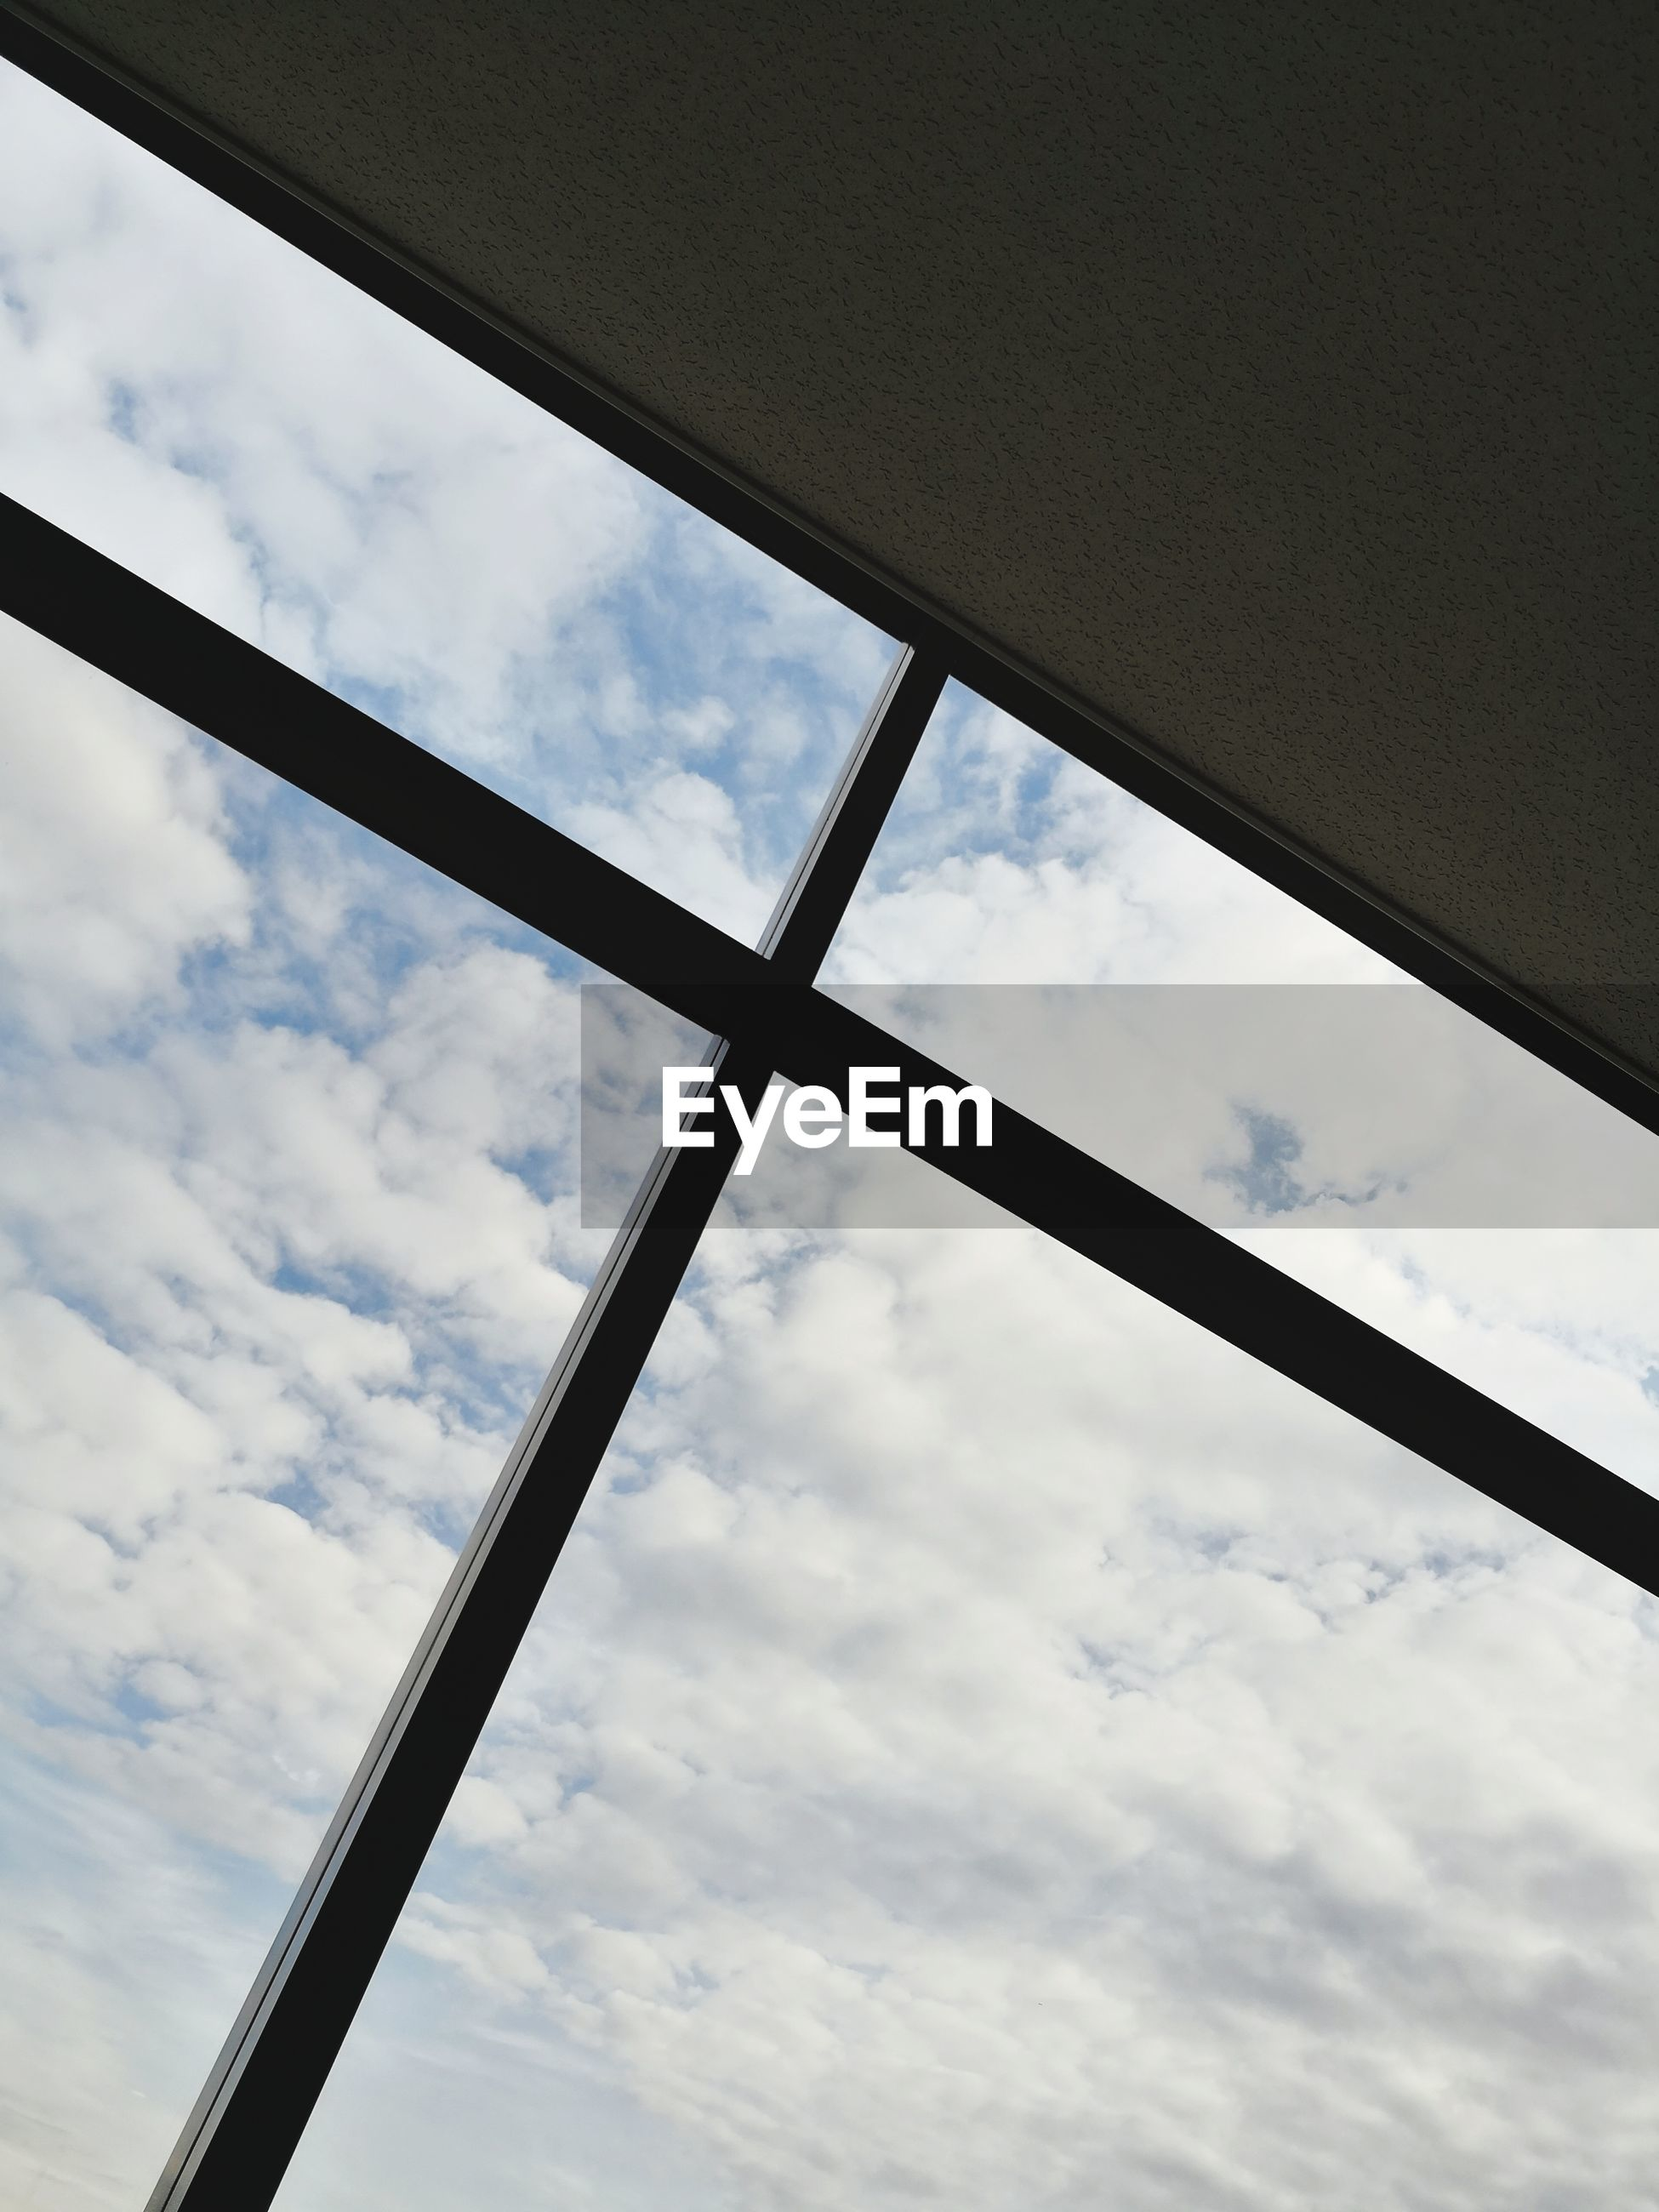 LOW ANGLE VIEW OF SKY THROUGH WINDOW